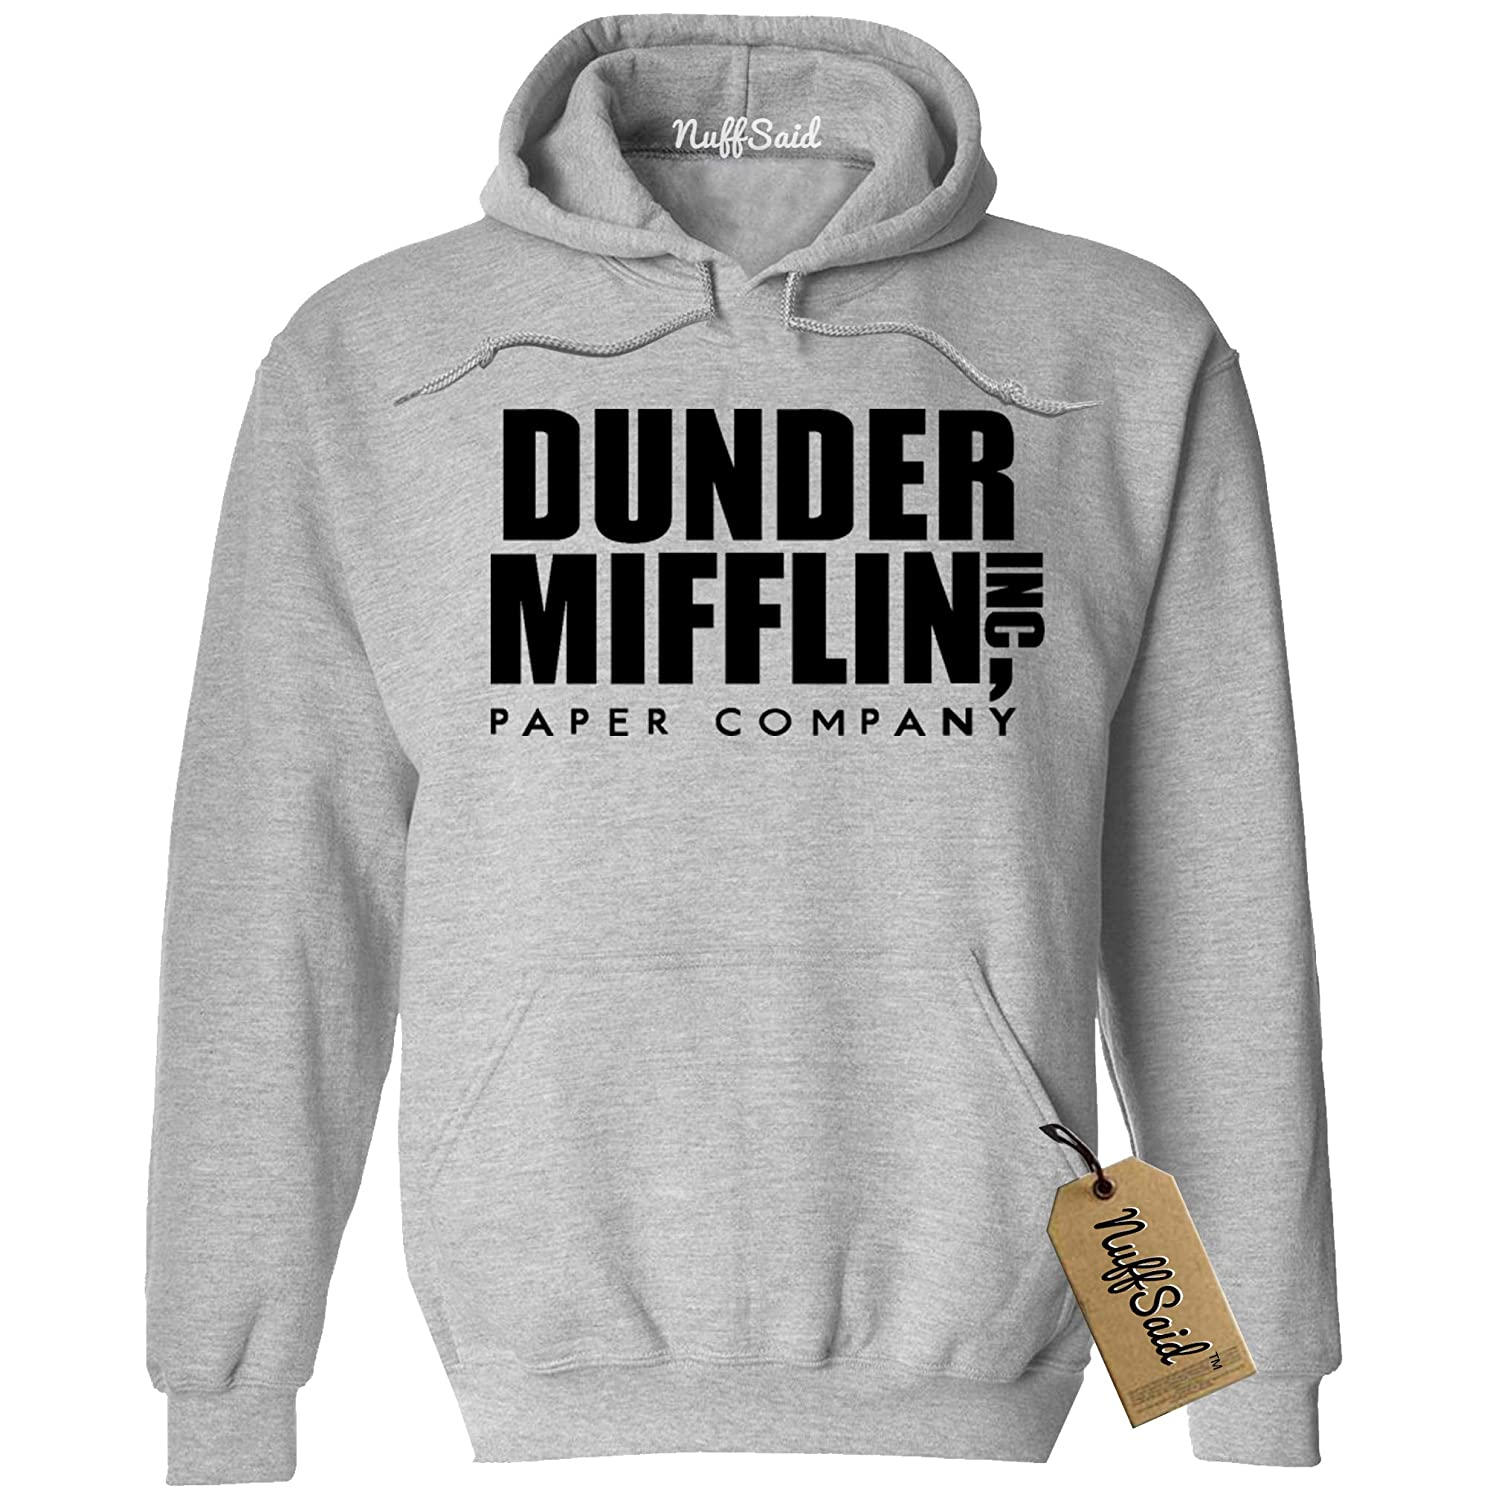 NuffSaid Dunder Mifflin Hooded Sweatshirt Sweater Hoodie - Premium Quality TV Shirt Sweatshirt